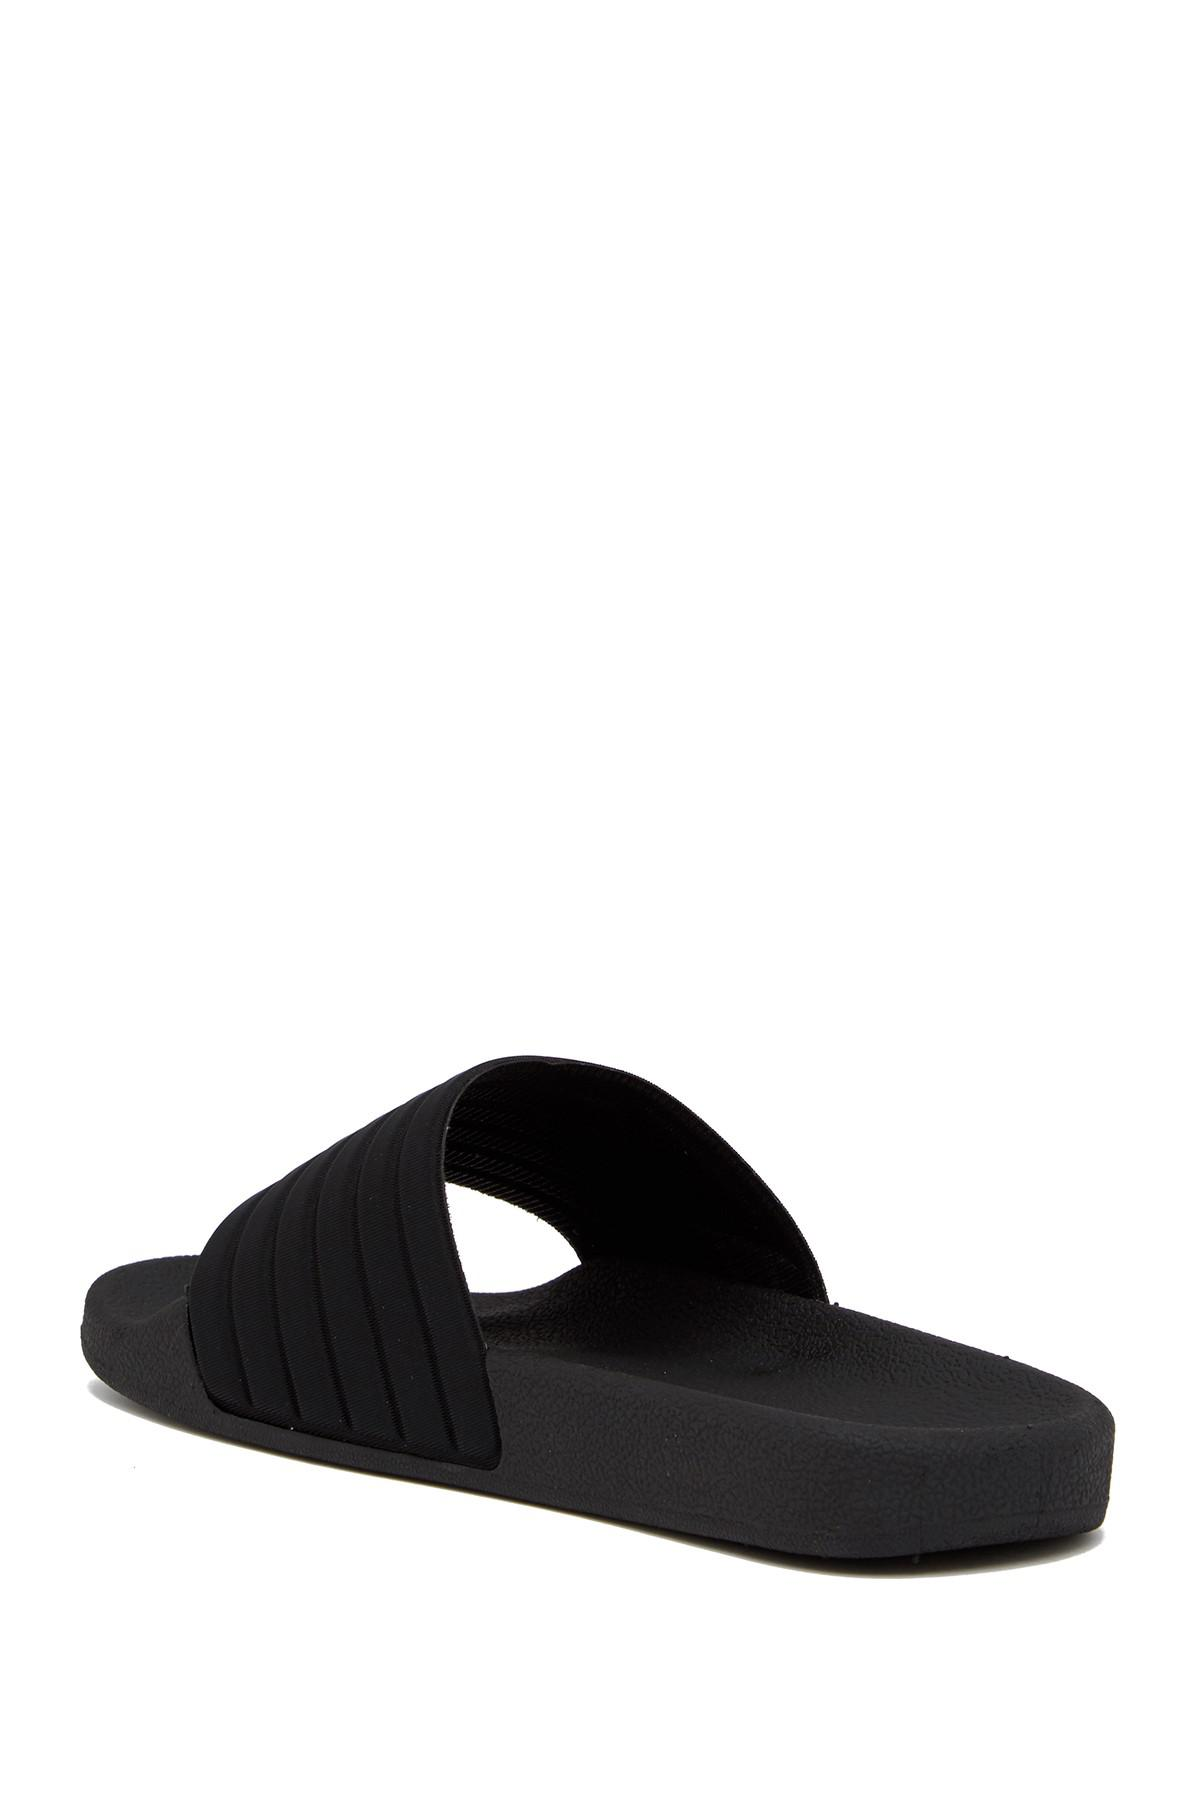 607ae848a035 Lyst - Guess Ignite Slider Sandal in Black for Men - Save 17%